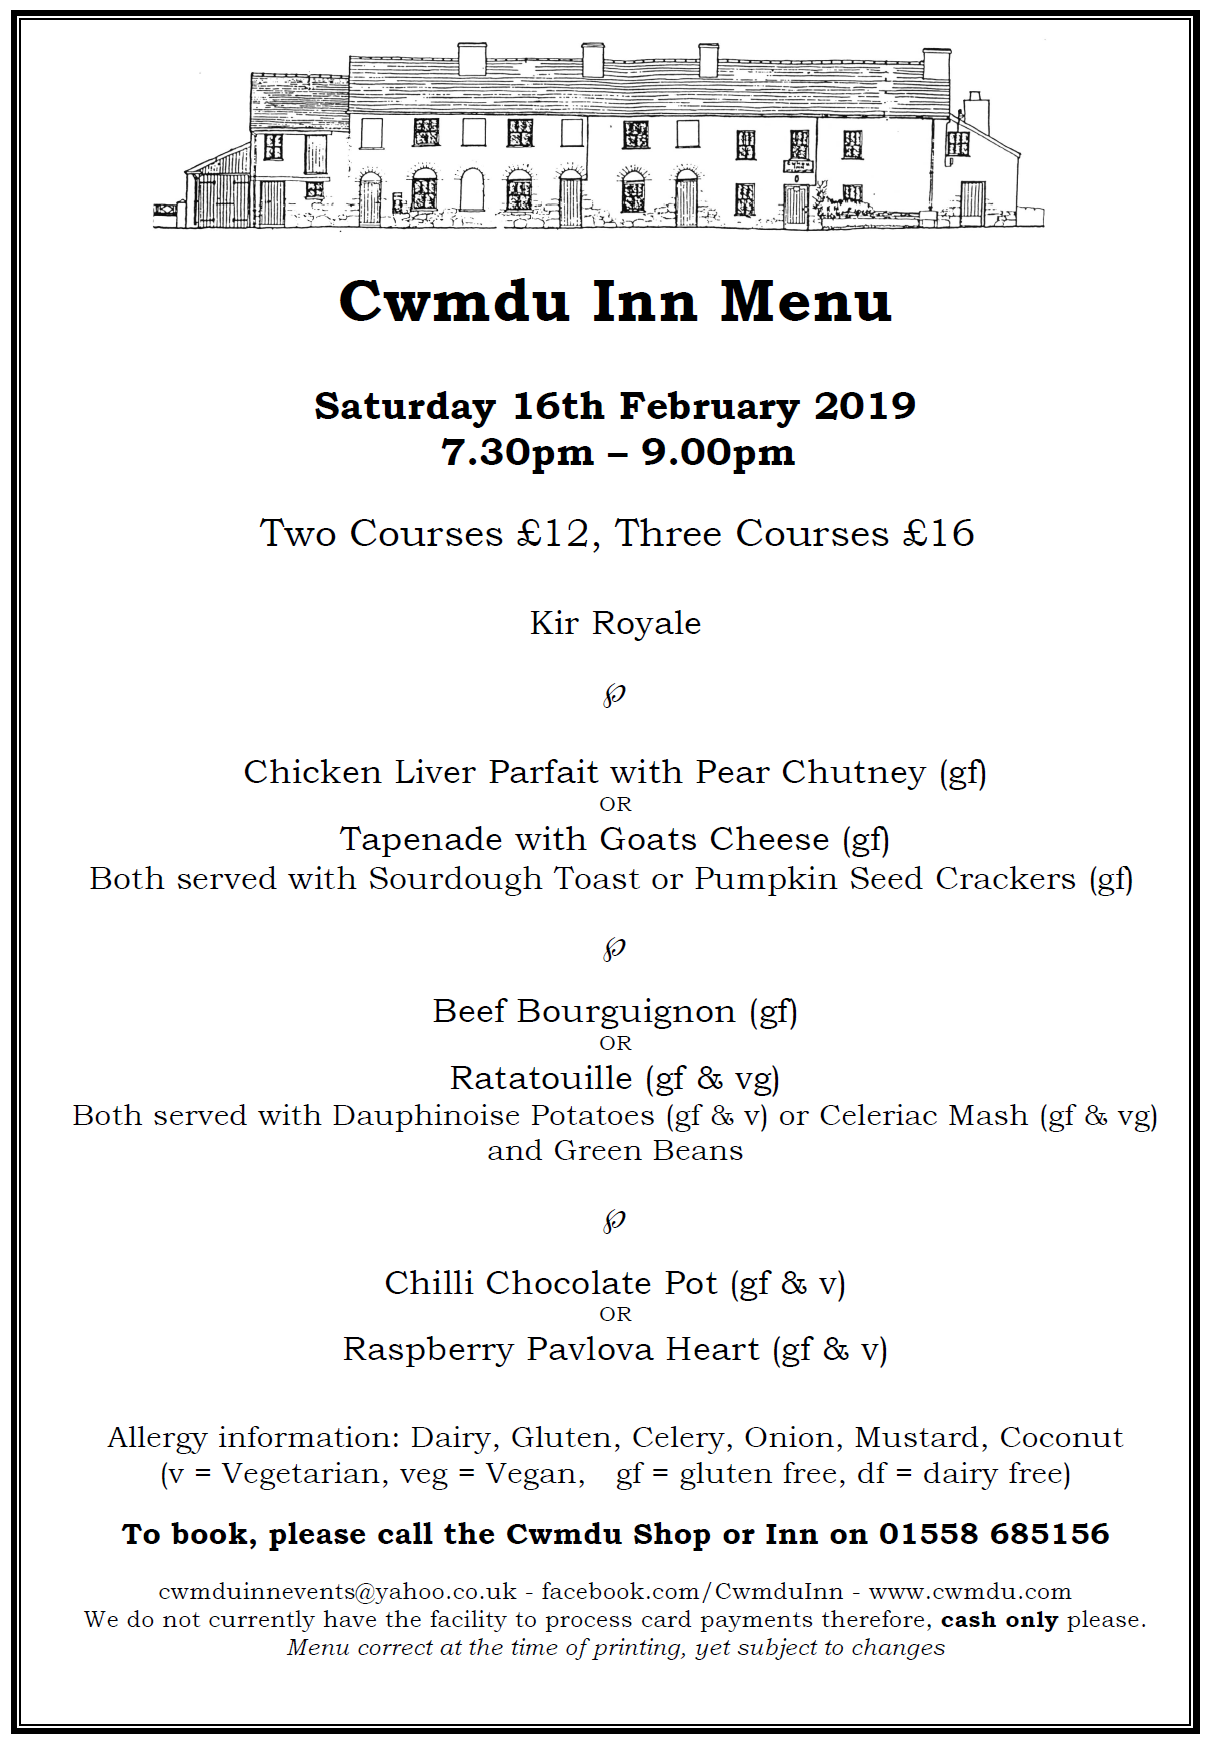 Cwmdu-Inn-Menu-16-February-2019